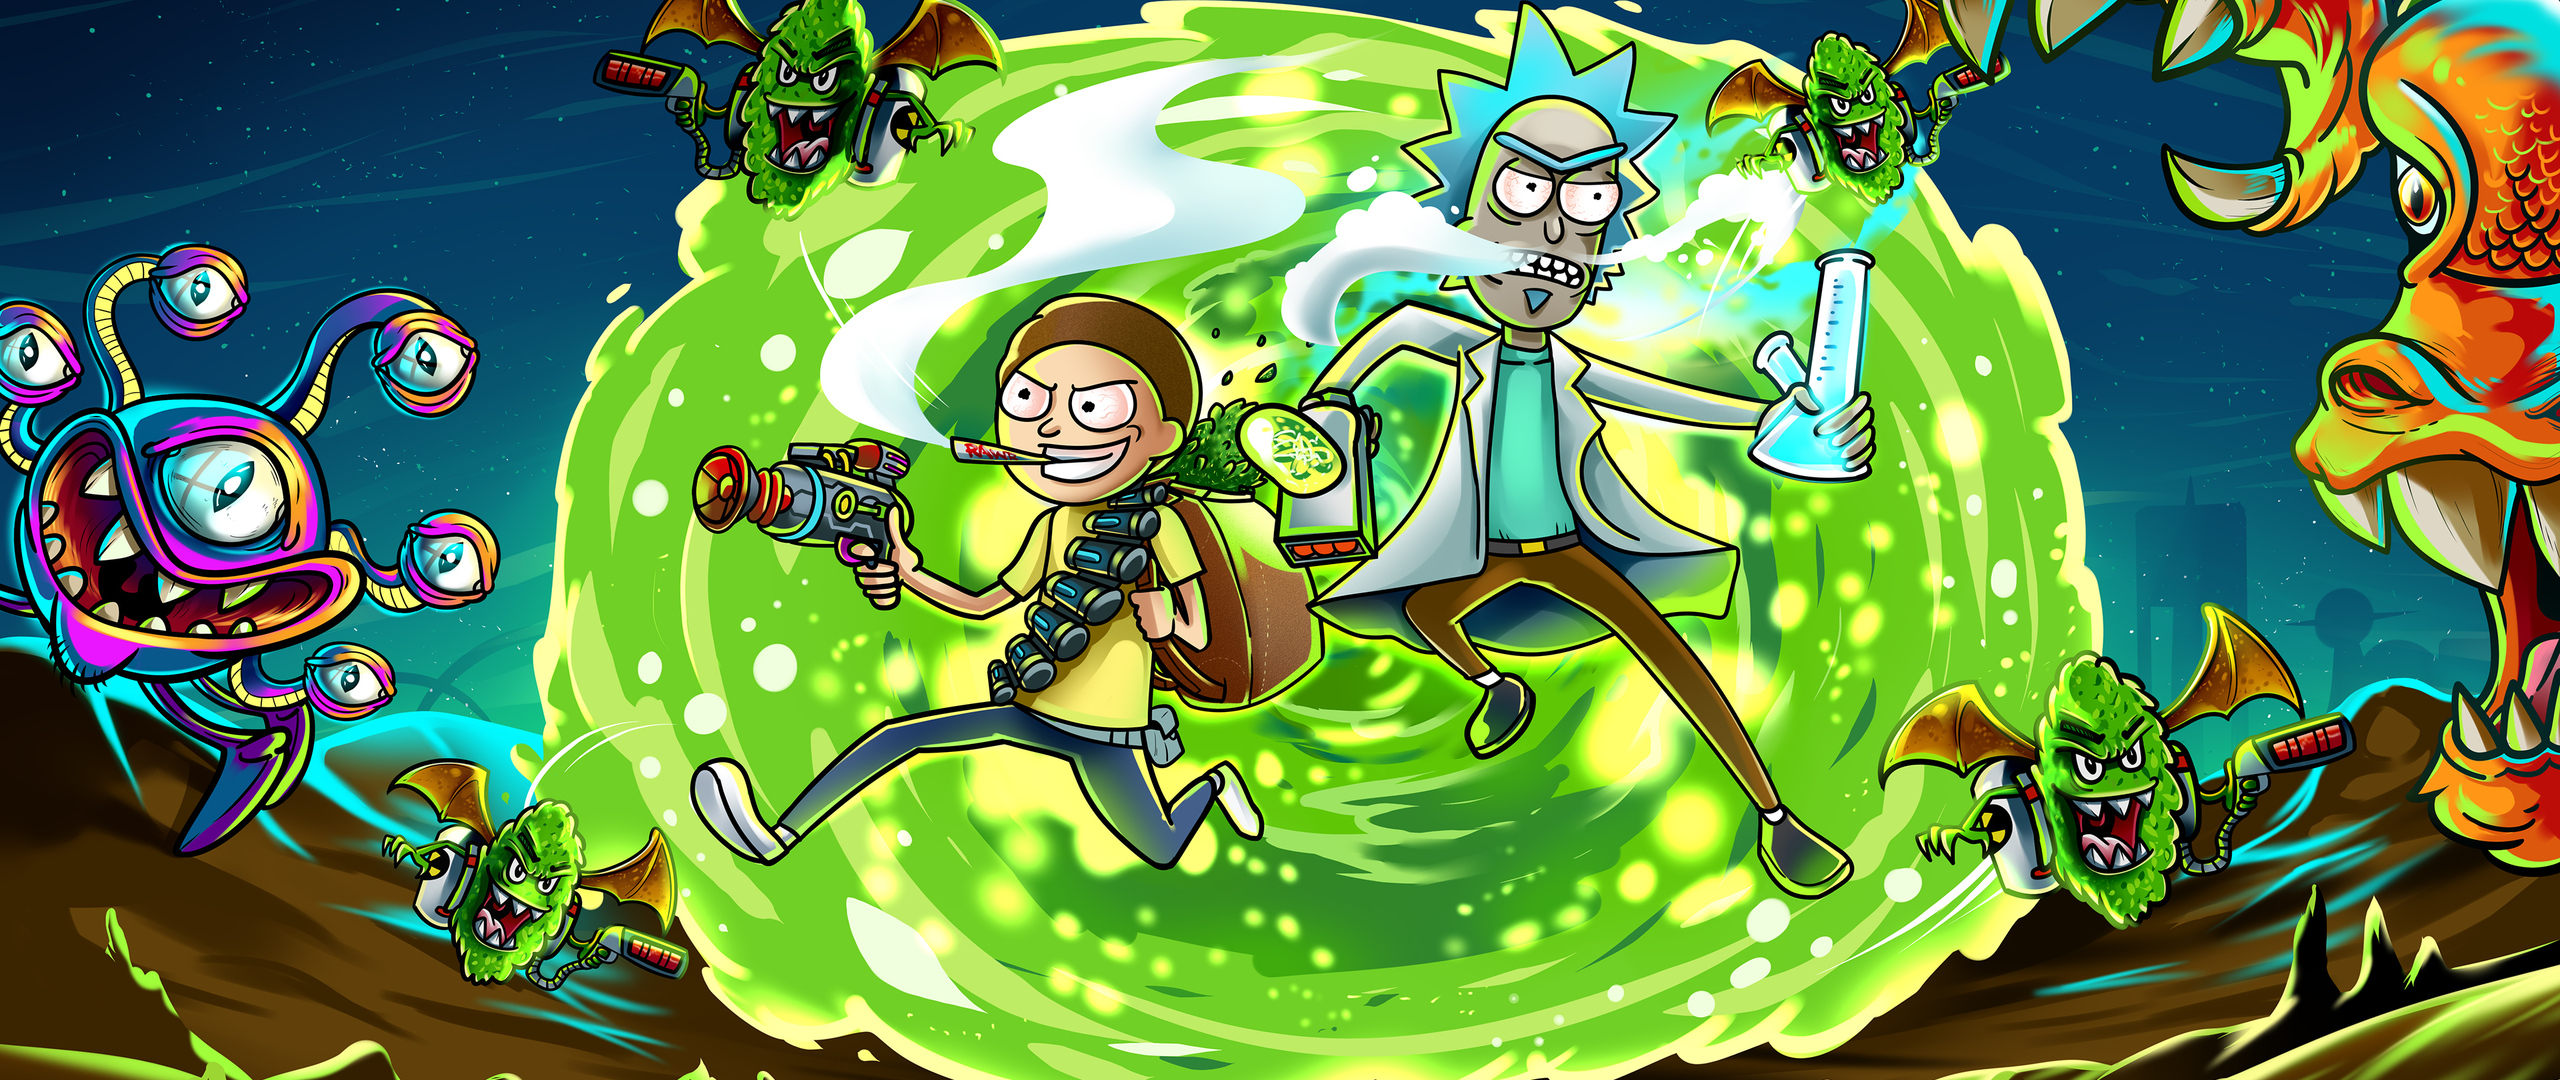 2560x1080 rick and morty in another dimension illustration 2560x1080 resolution hd 4k wallpapers - Rick and morty download ...